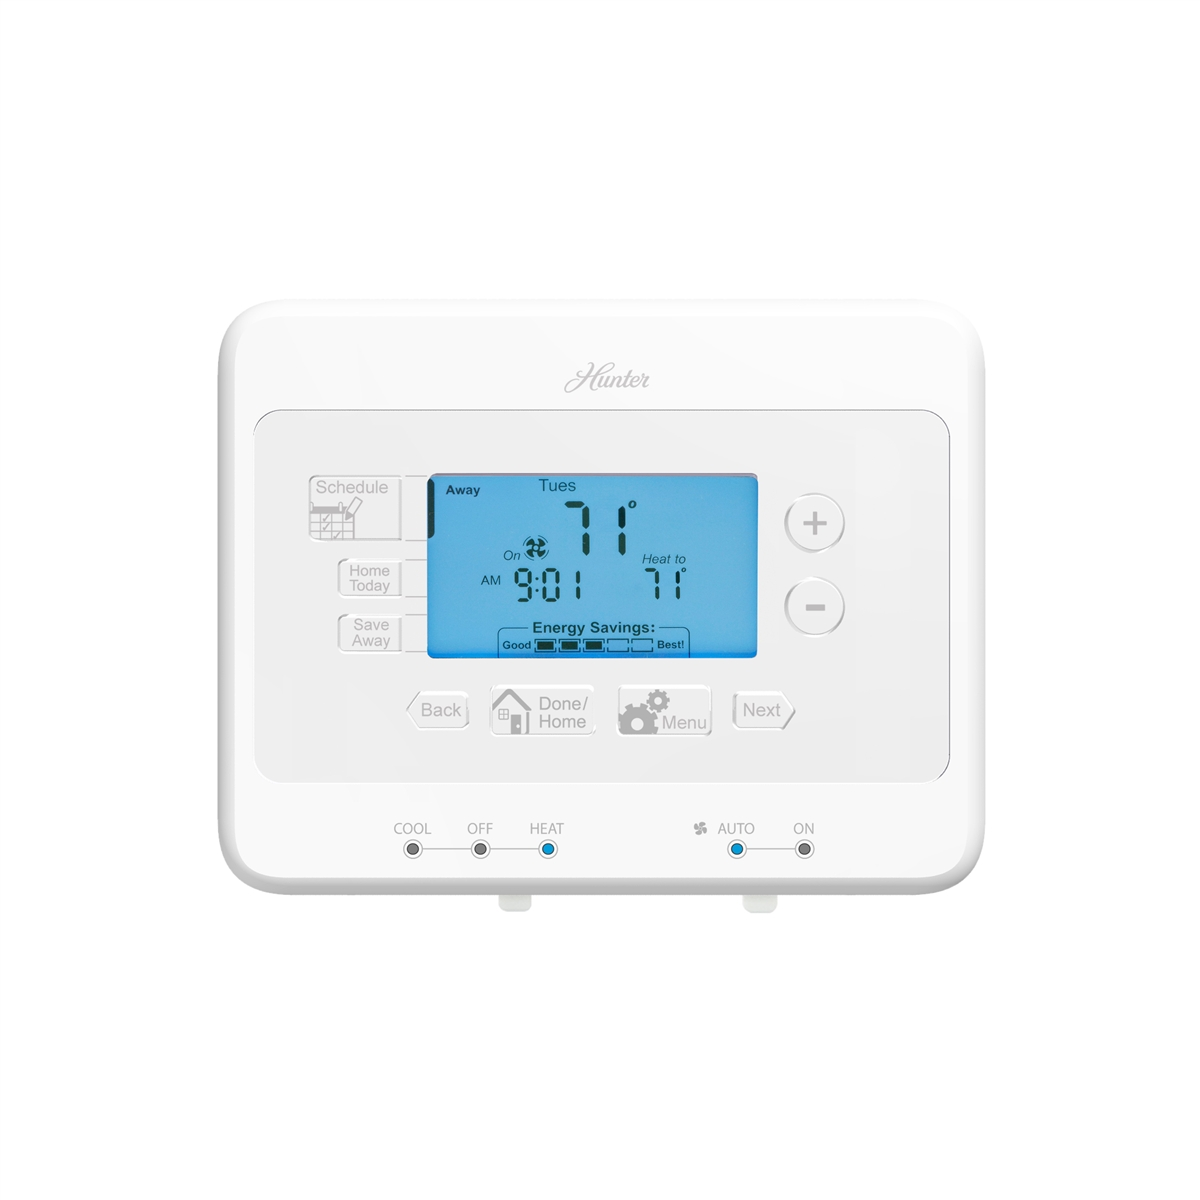 44378 2?1410336795 universal 7 day programmable thermostat (44378) hunter 44378 wiring diagram at creativeand.co